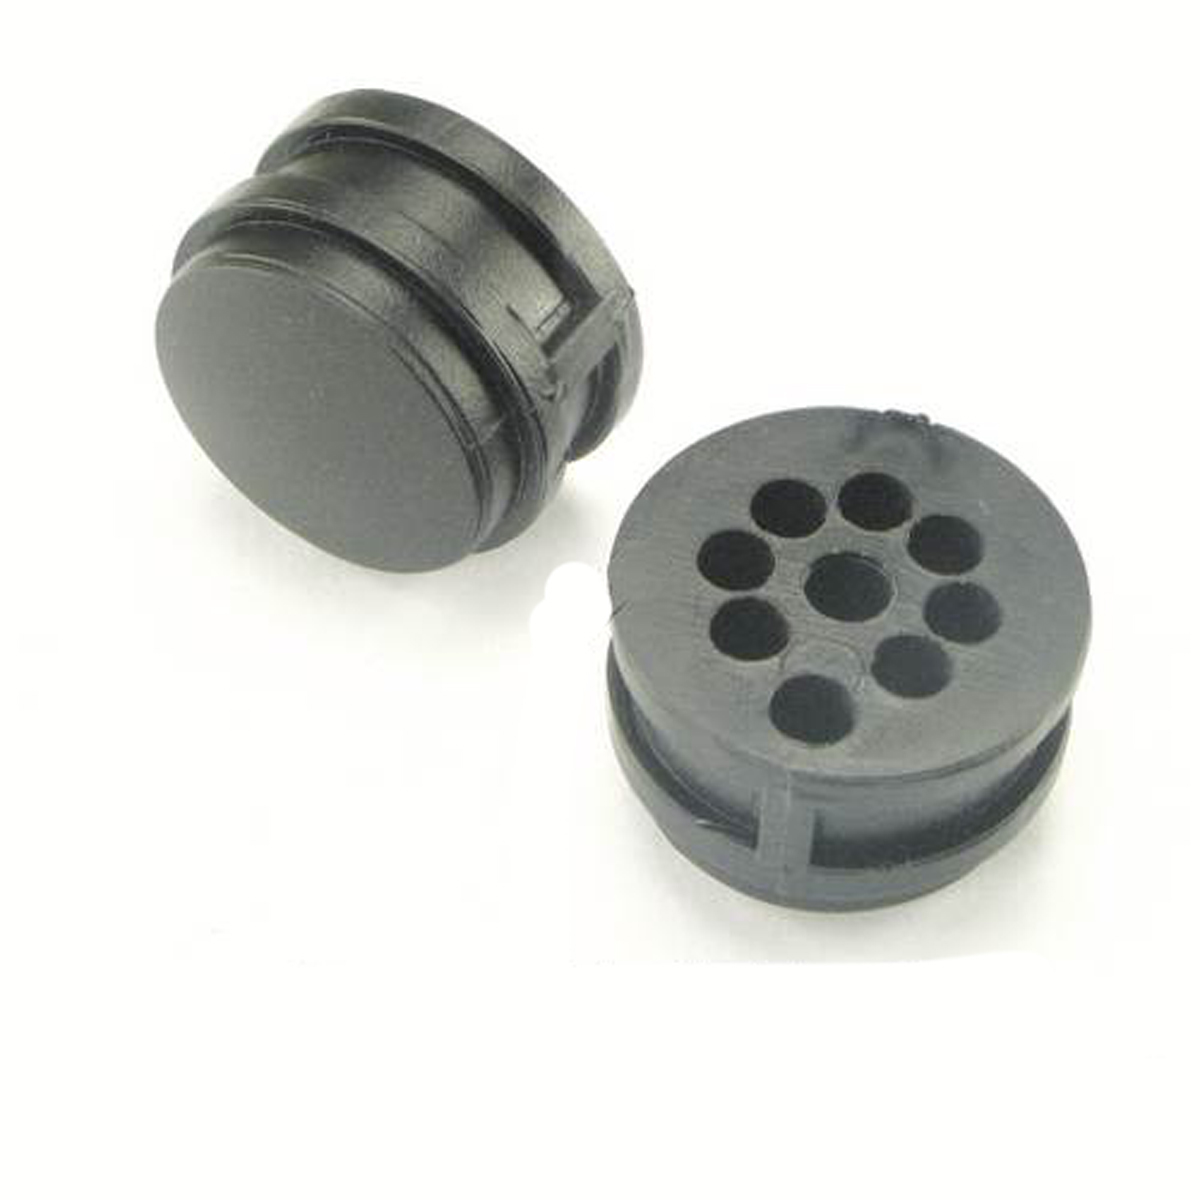 Tippmann Paintball End Cap Plastic by